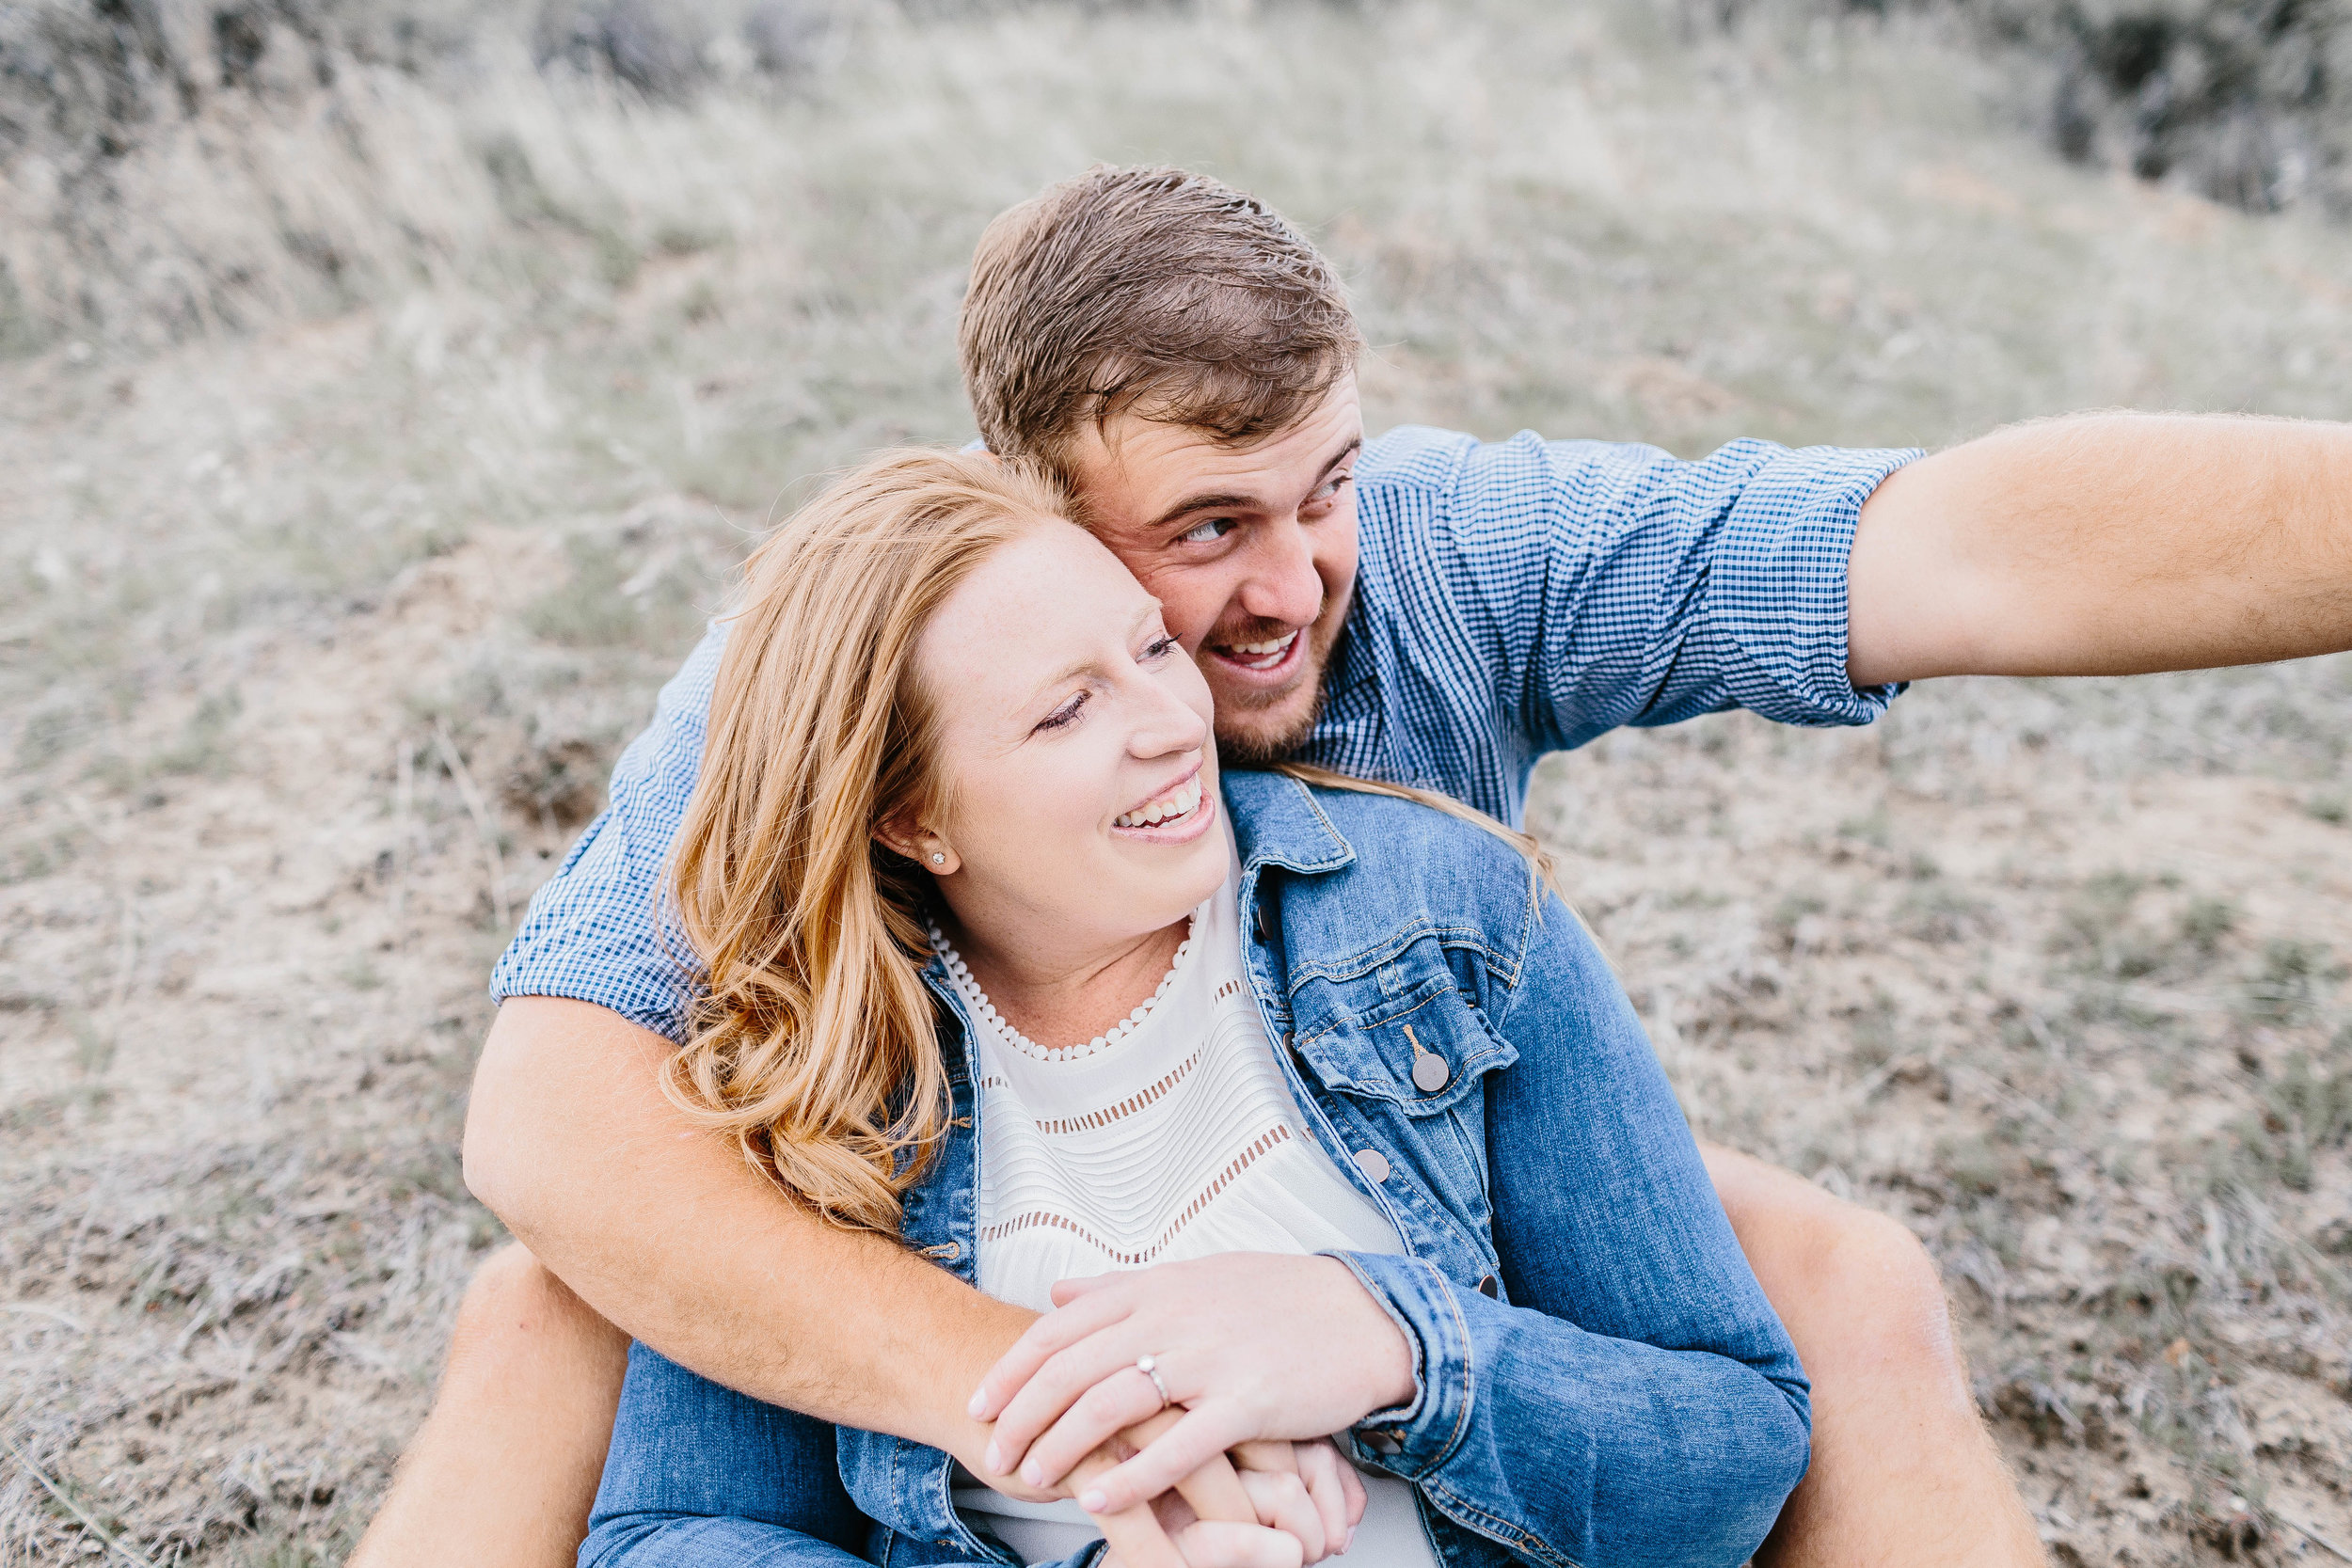 Rohan-and-Lydia-Boise-Foothills-Engagement-Session-91.jpg